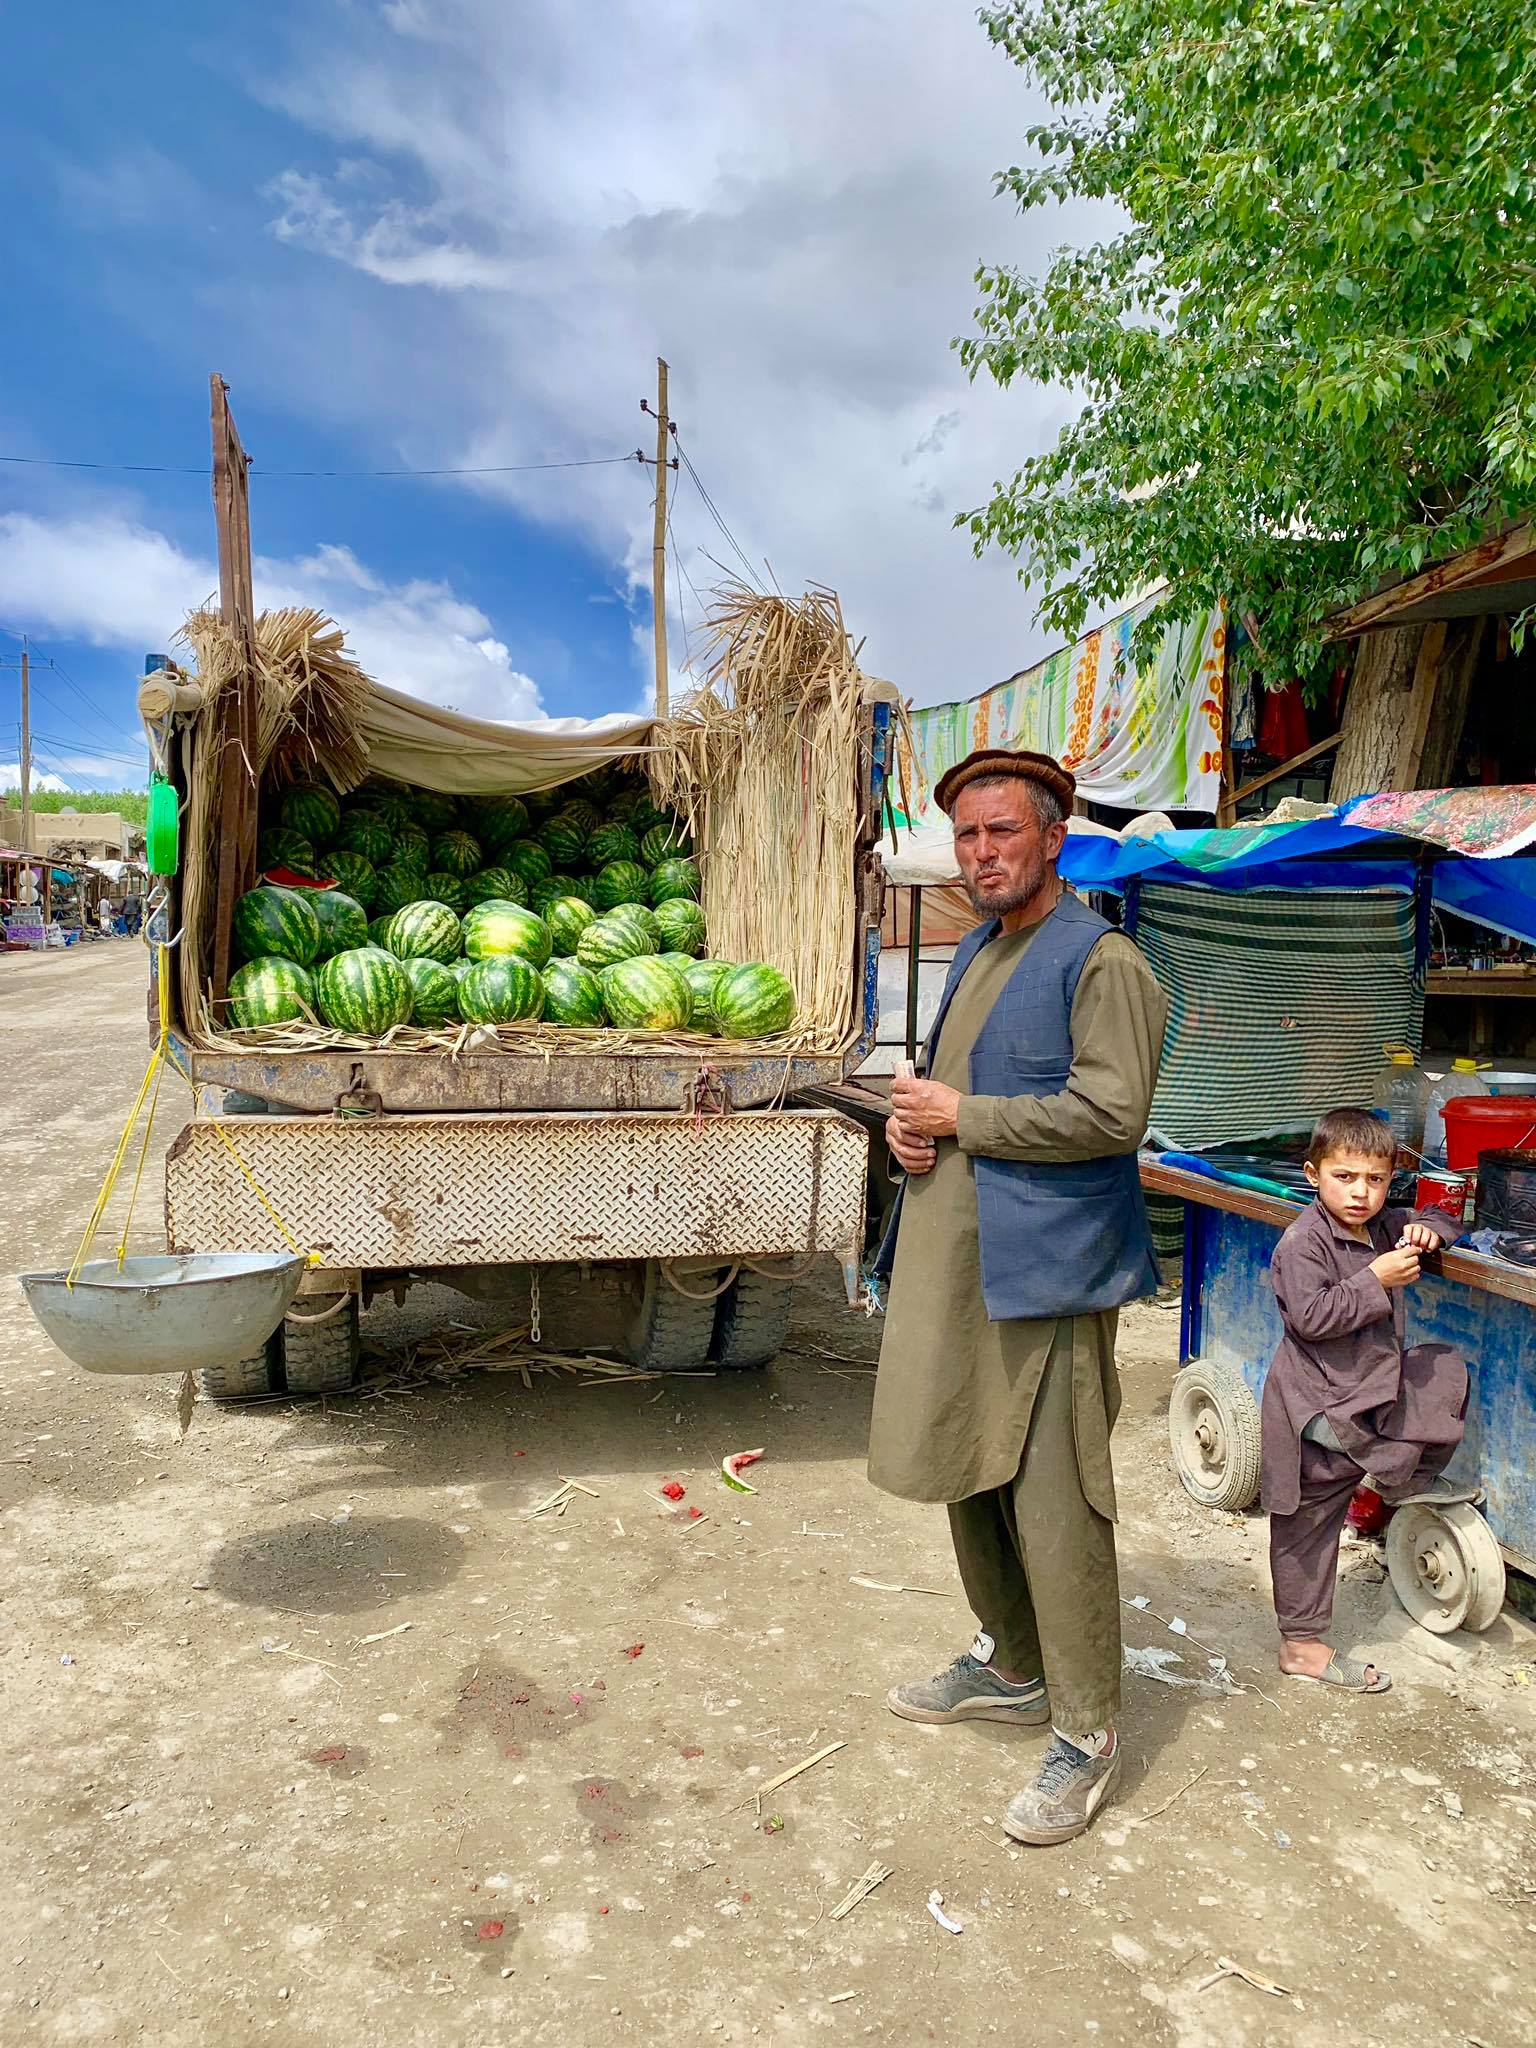 Kach Solo Travels in 2019 AFGHANISTAN, my 127th country11.jpg